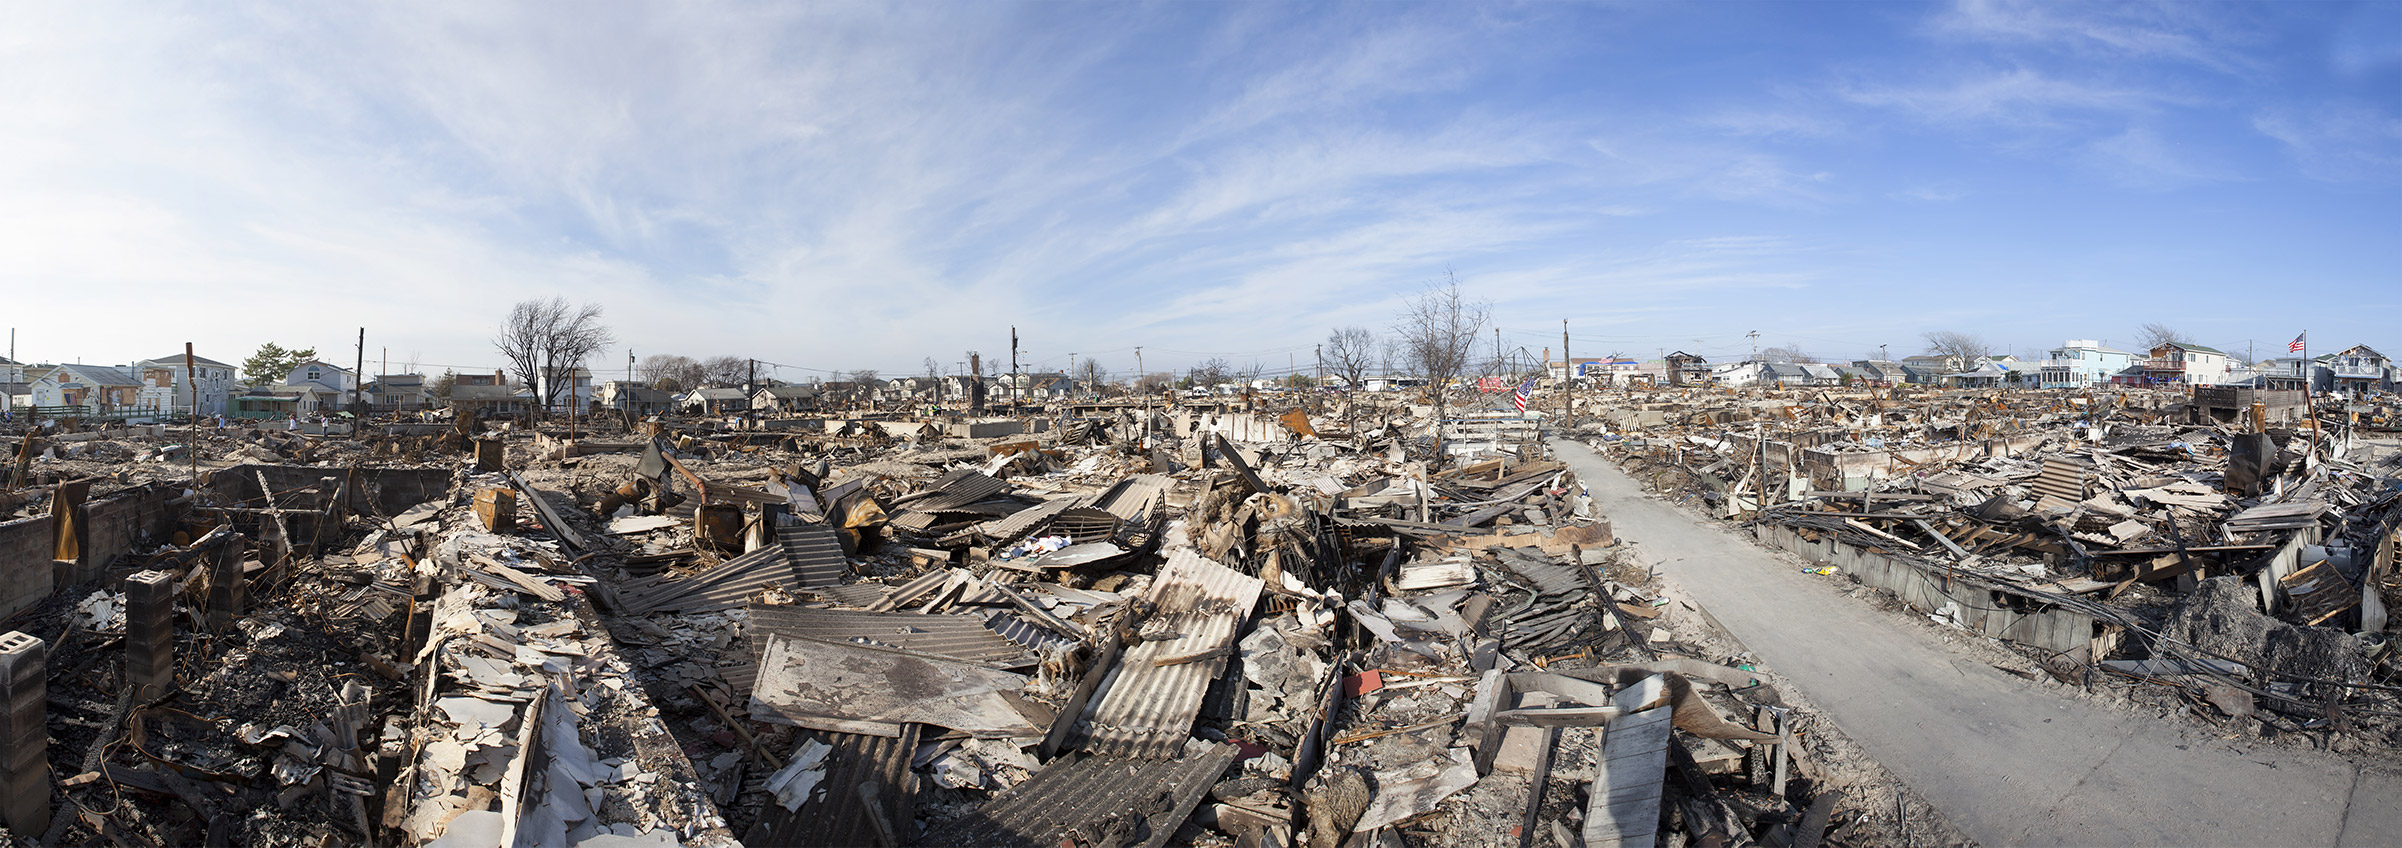 NEW YORK -November12: The fire destroyed around 100 houses during Hurricane Sandy in the flooded neighborhood at Breezy Point in Far Rockaway area on October 29, 2012 in New York City; NY